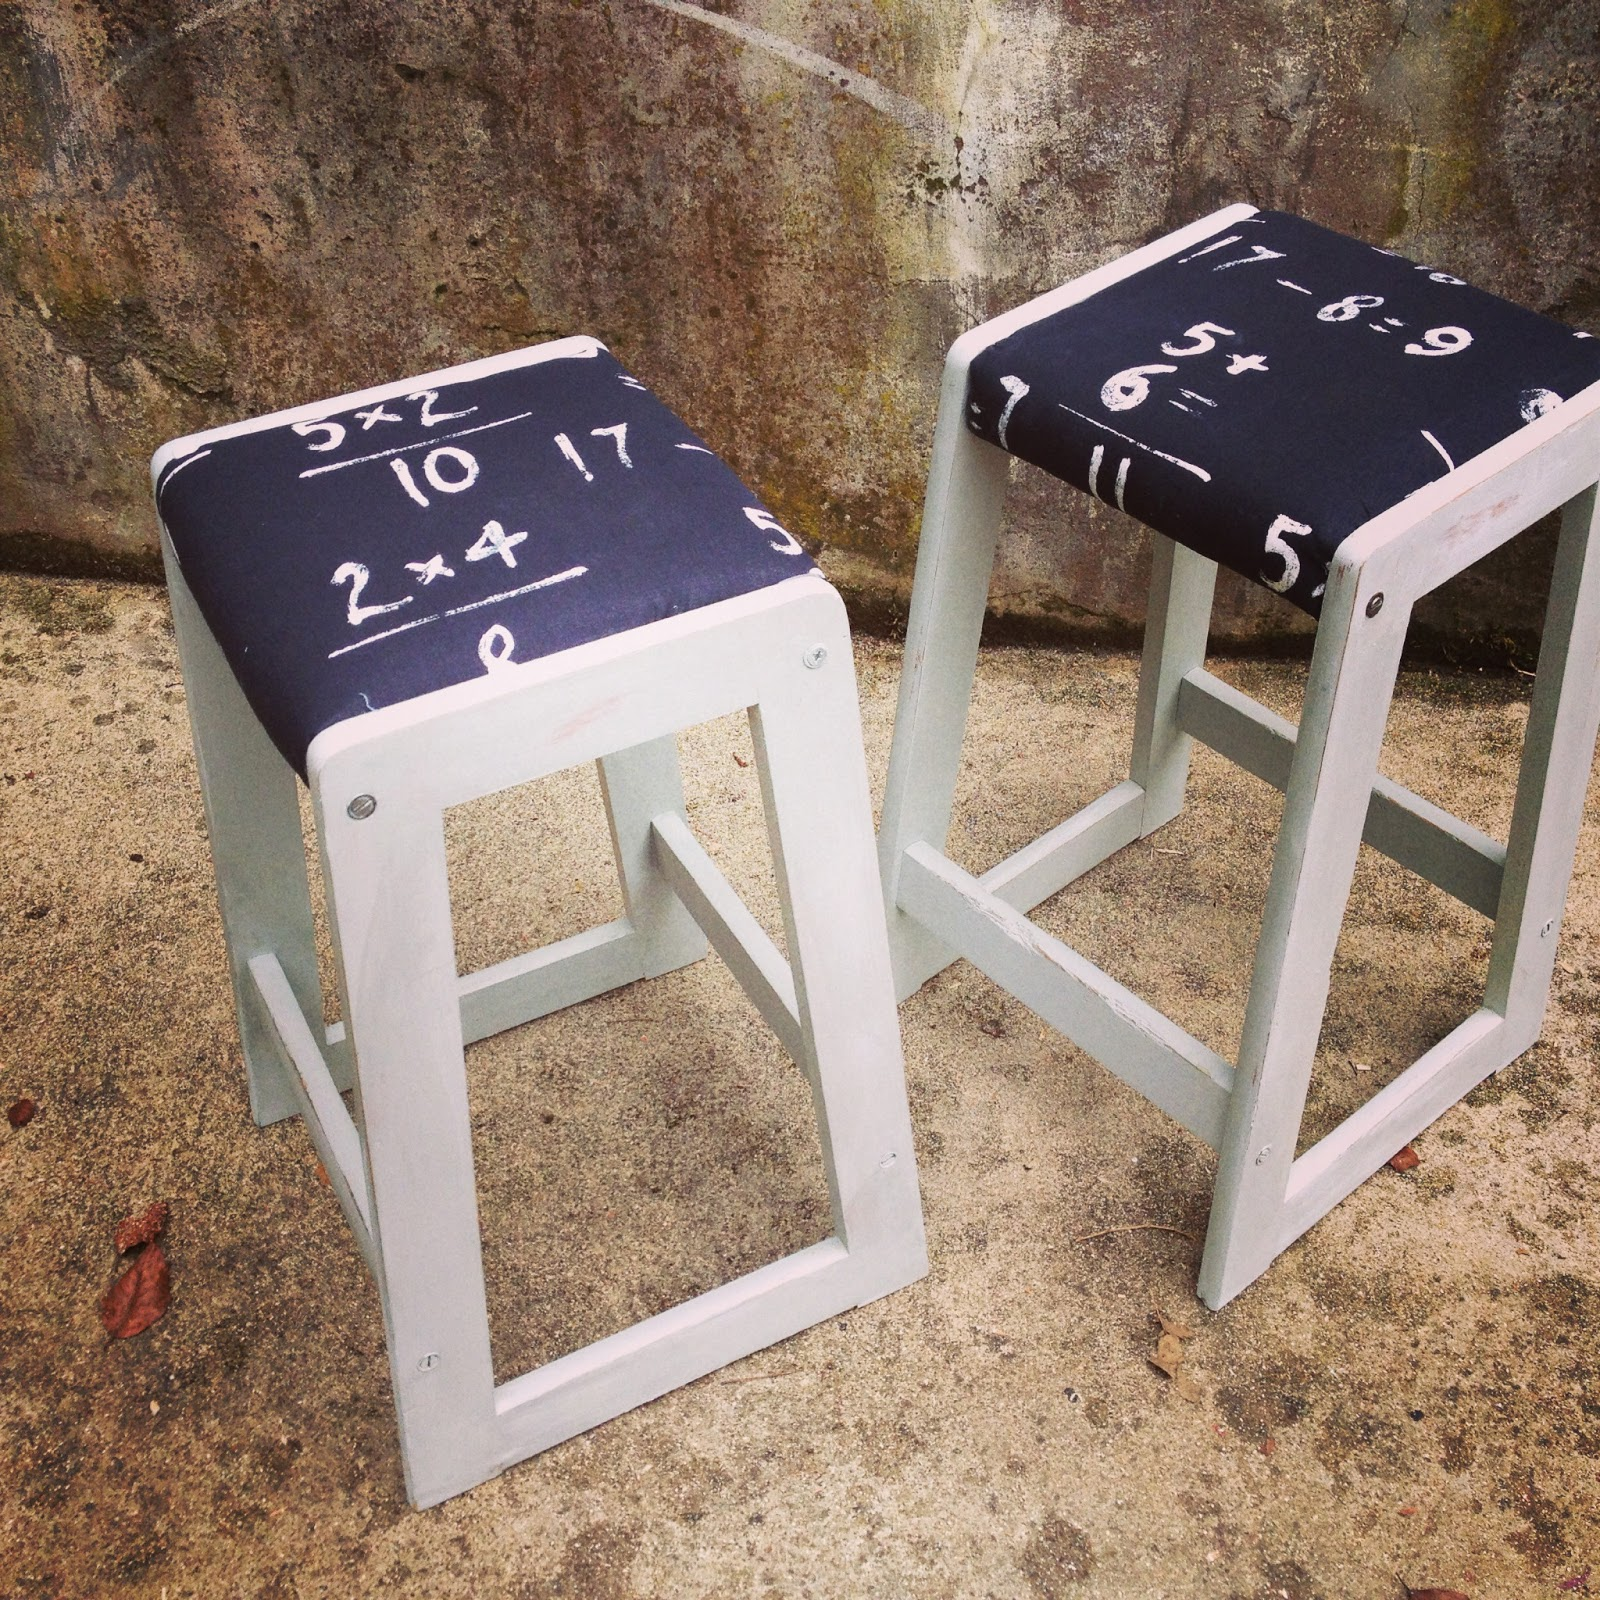 Upcycled painted and sewn together chairs bar stools  : fe60dc1071fe7fa50ec2d61ce17a25f0 from blog1stfurniture.blogspot.com size 1600 x 1600 jpeg 824kB